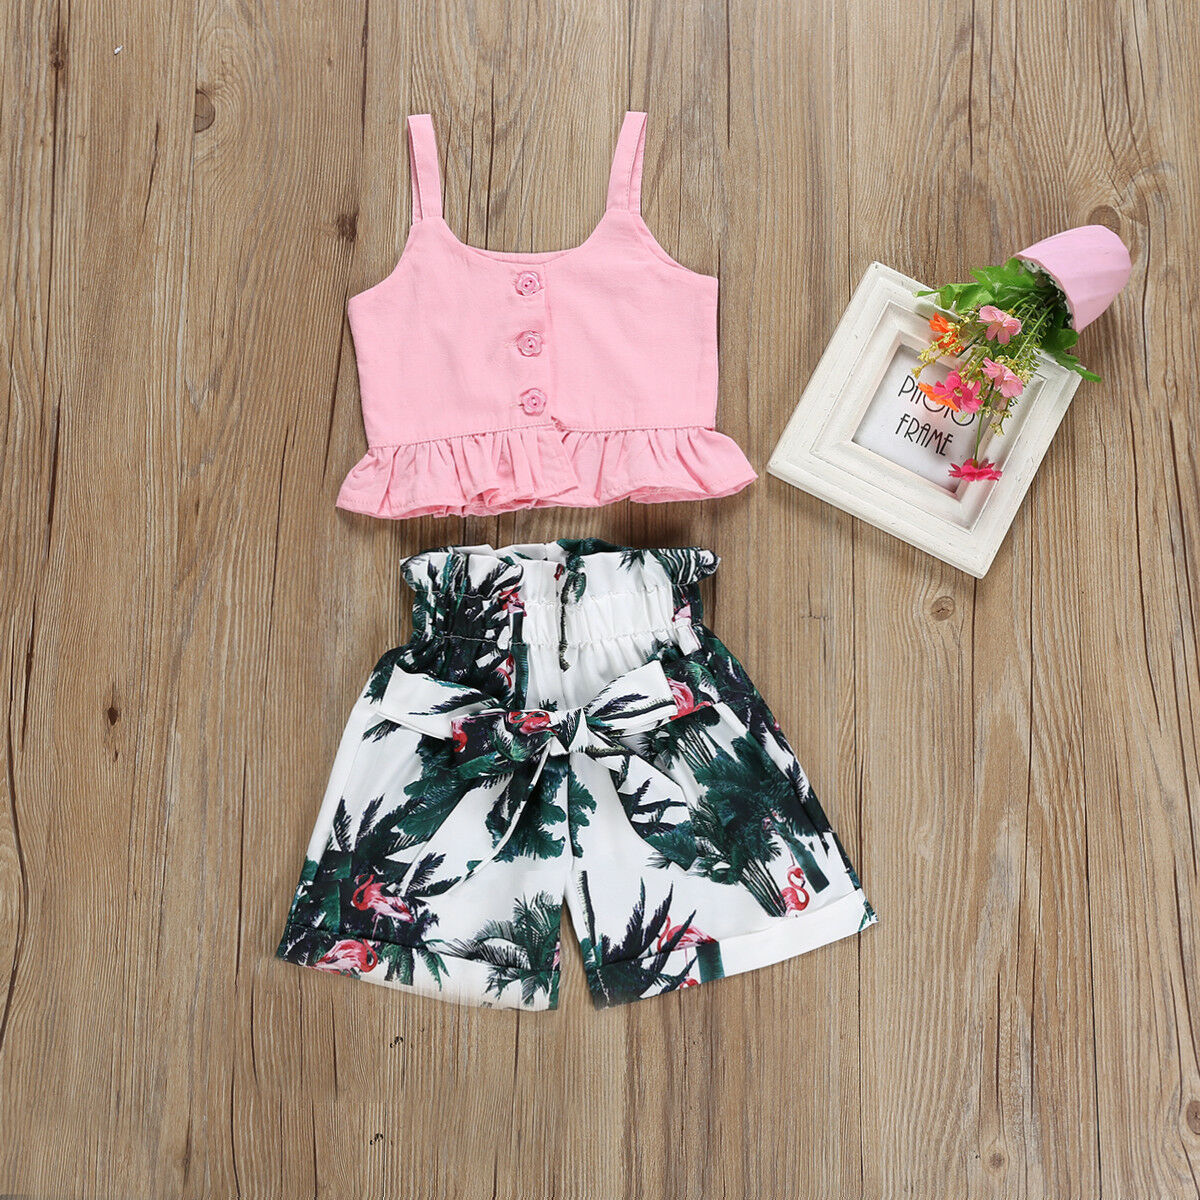 Baby Girls Summer Sling Top Shorts Flower Pants Suit Outfits Set Summer Clothes